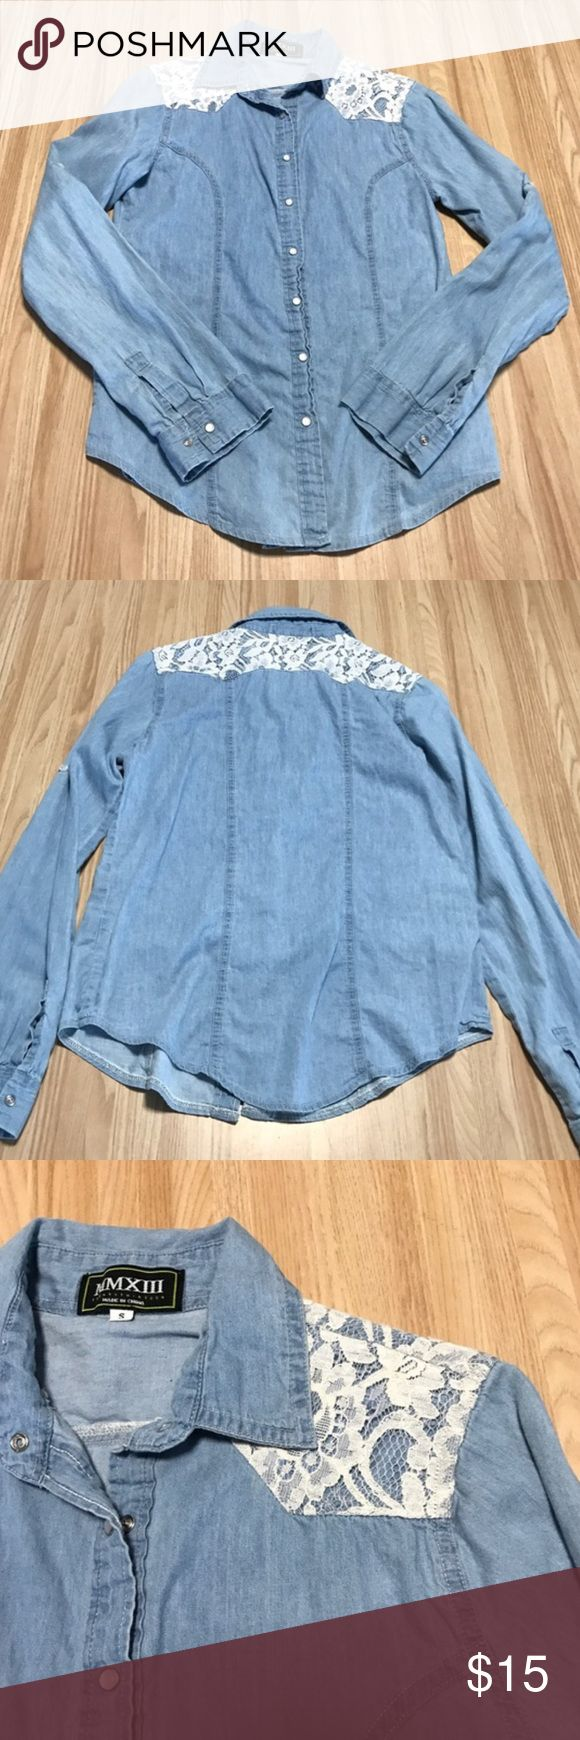 Lace Chambray Top EUC. Chambray top with crochet / lace shoulder details. Snap button closure.  no trades | offer button only Tops